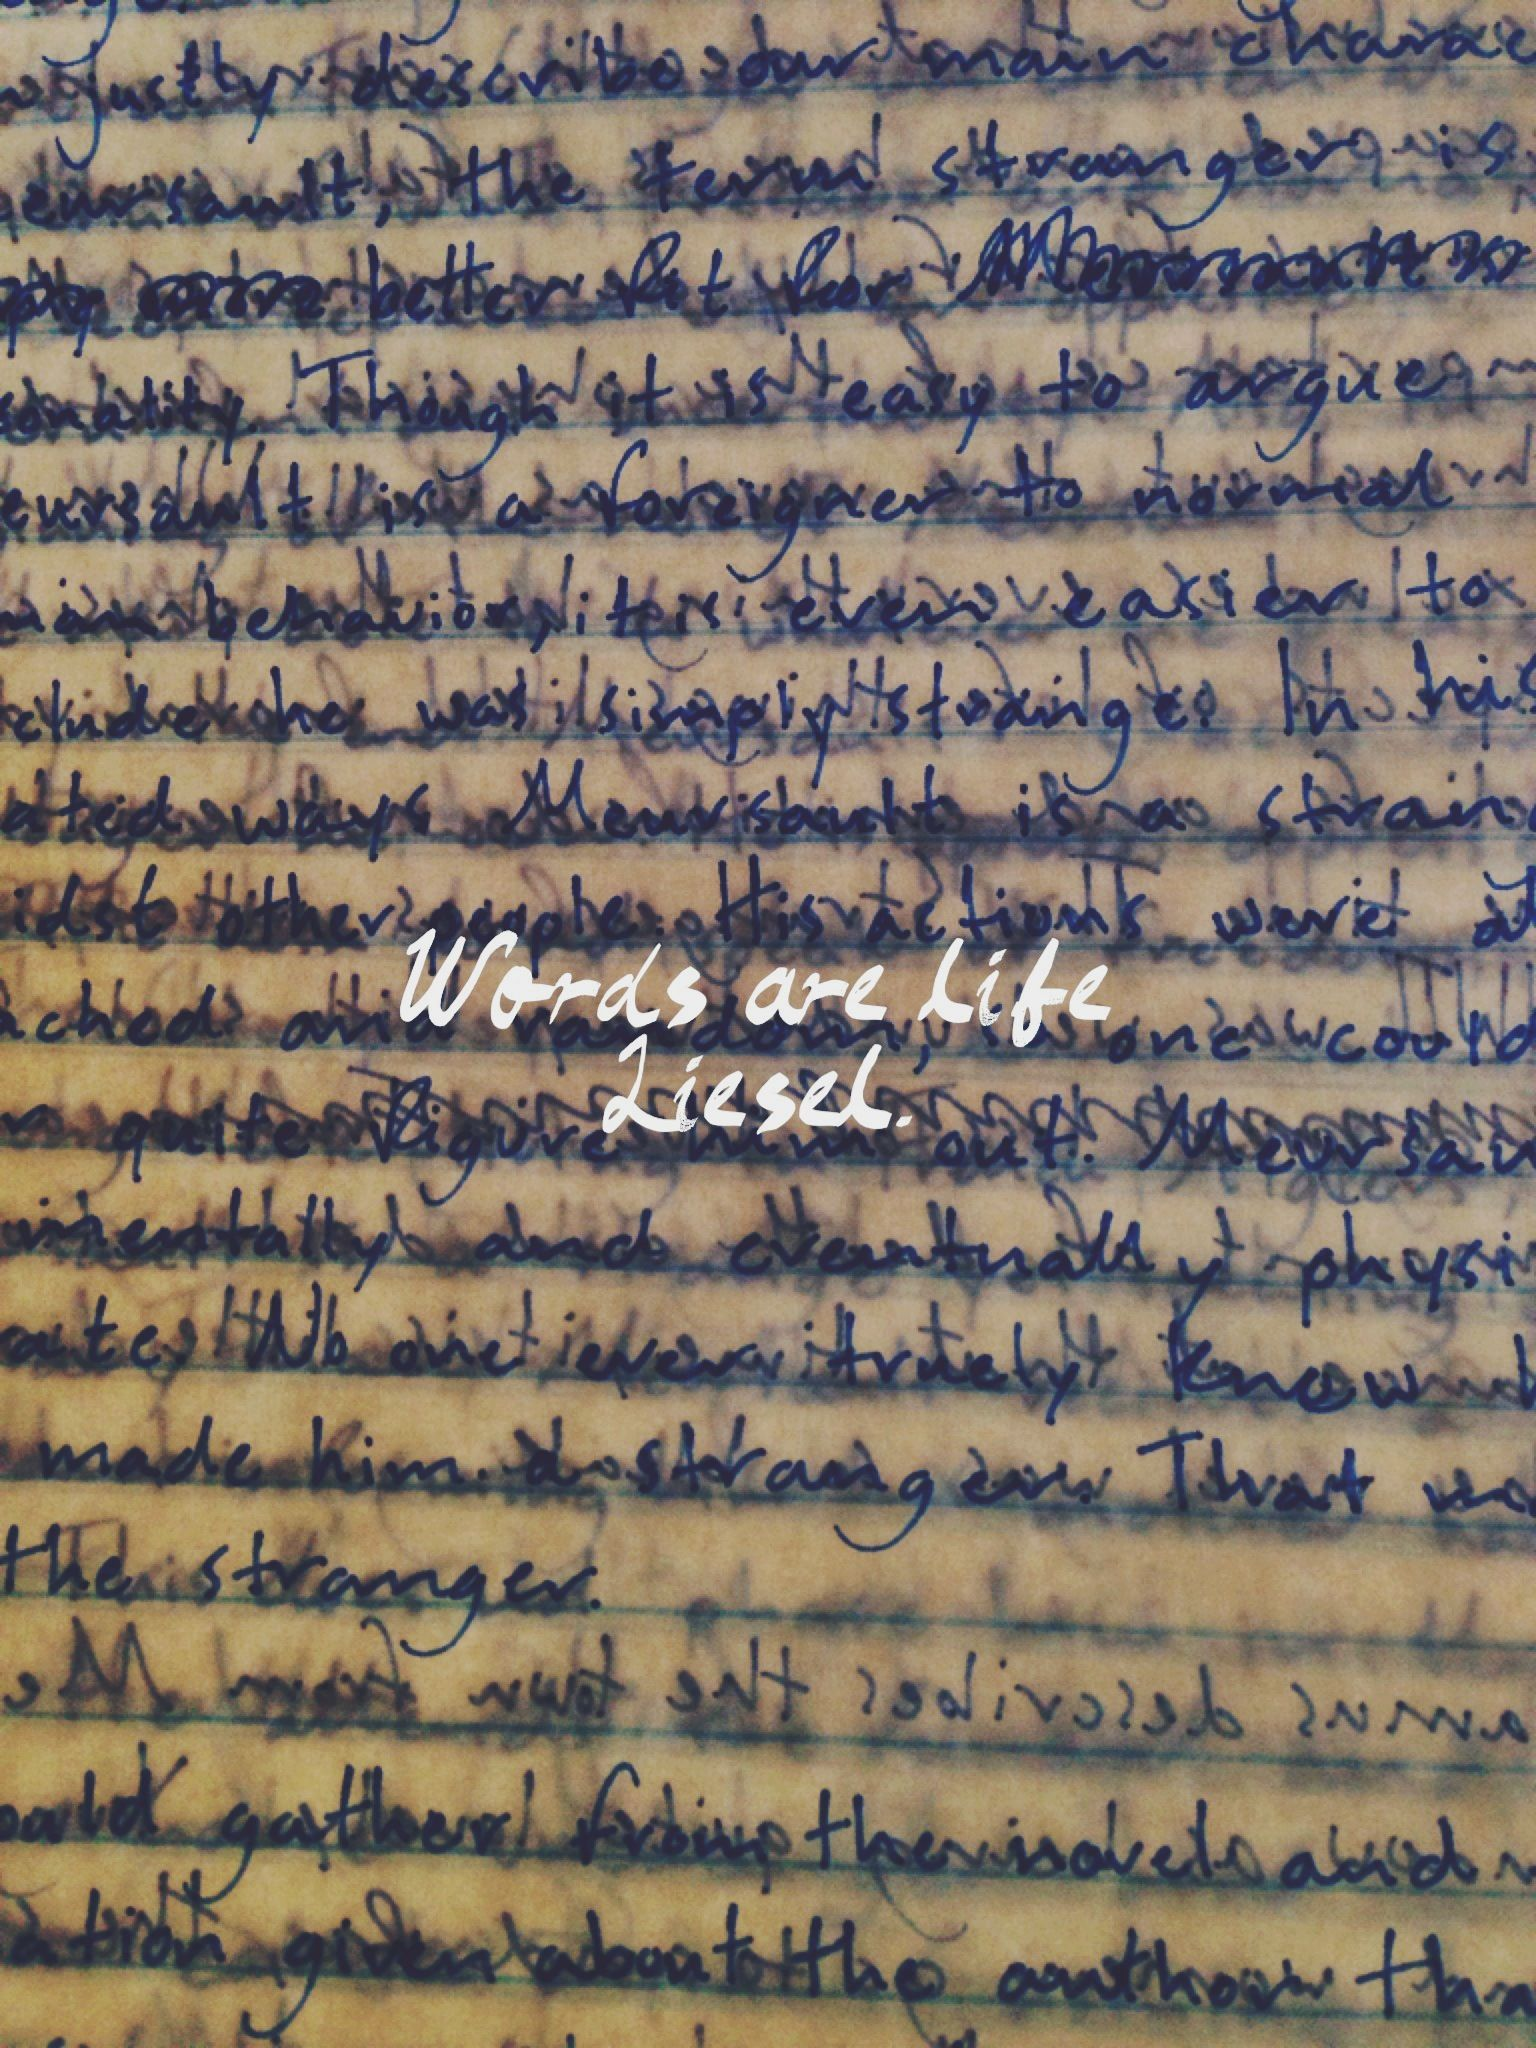 The Book Thief Quotes This Movie Quote Is So Brilliant It Sounds Like It Came From The